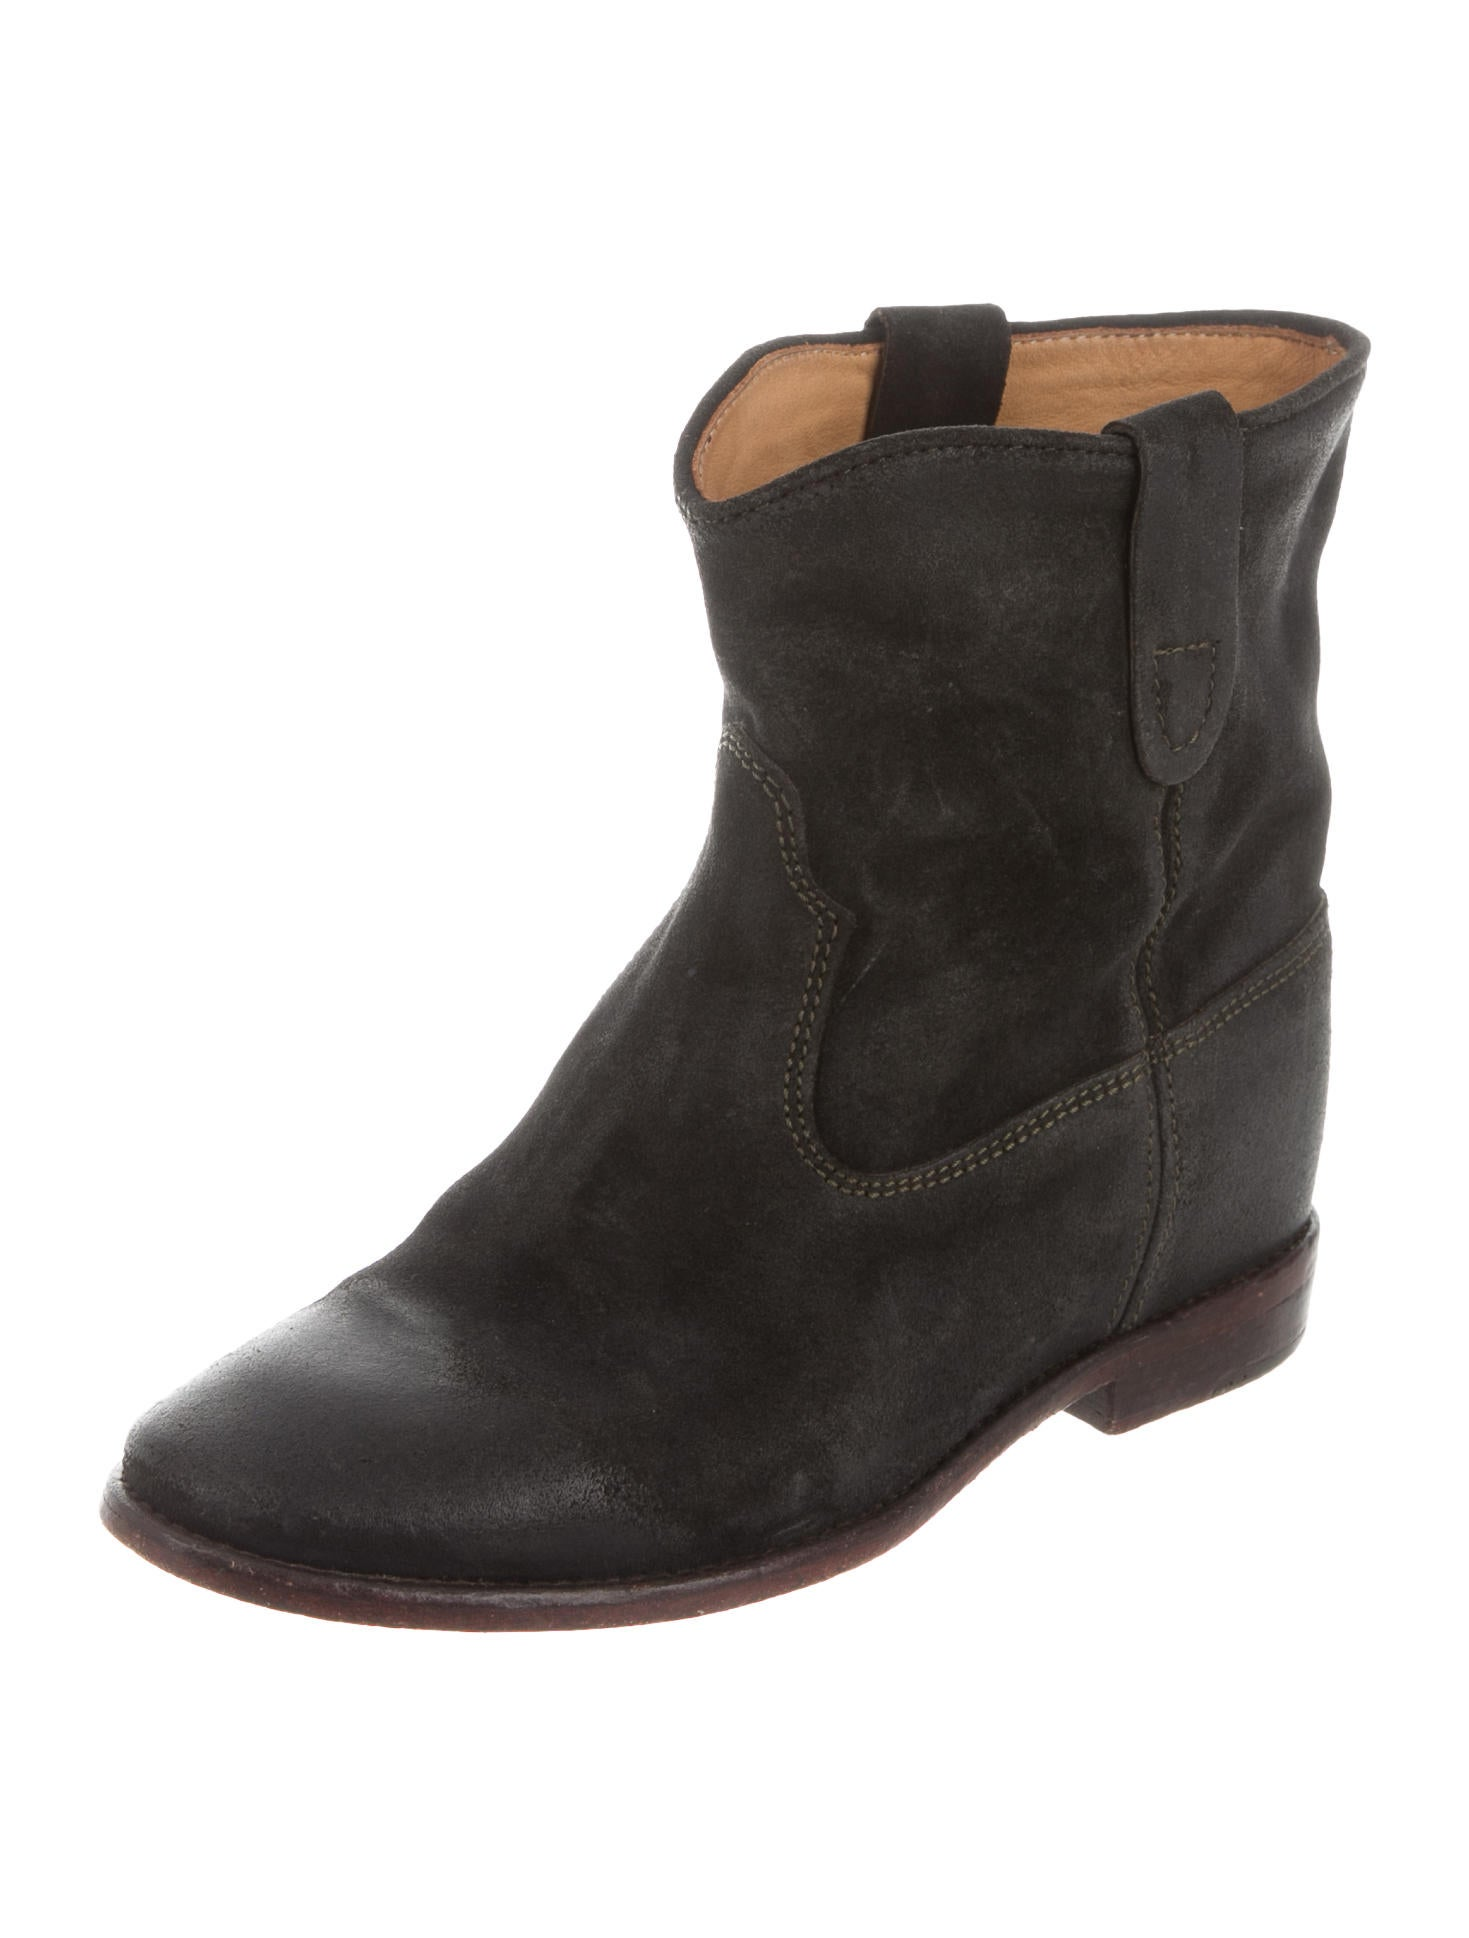 isabel marant crisi ankle boots shoes isa40007 the realreal. Black Bedroom Furniture Sets. Home Design Ideas